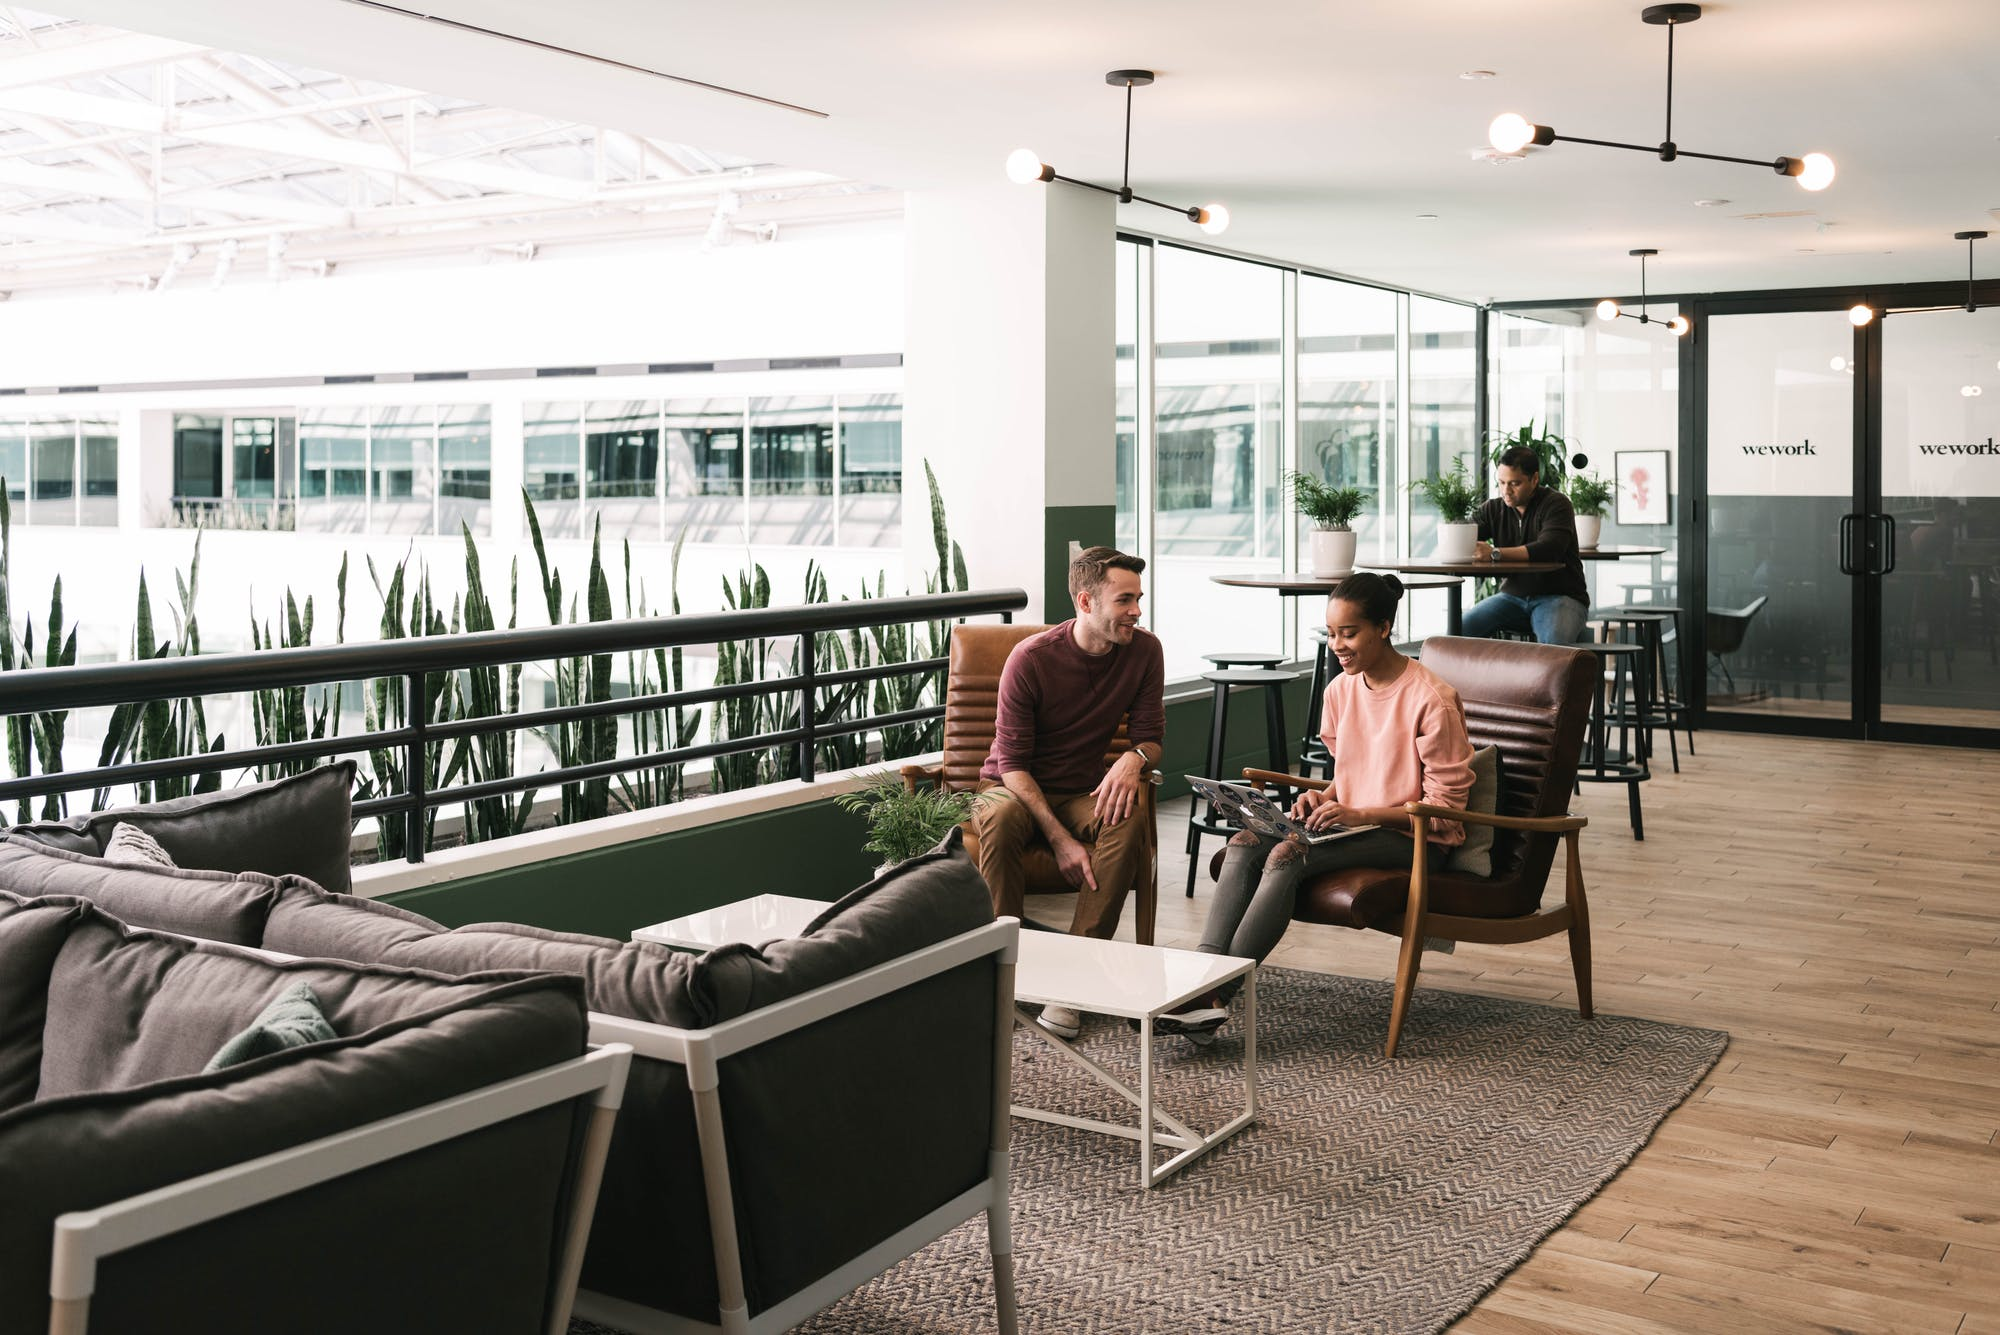 WeWork Ing. Enrique Butty 275, Buenos Aires